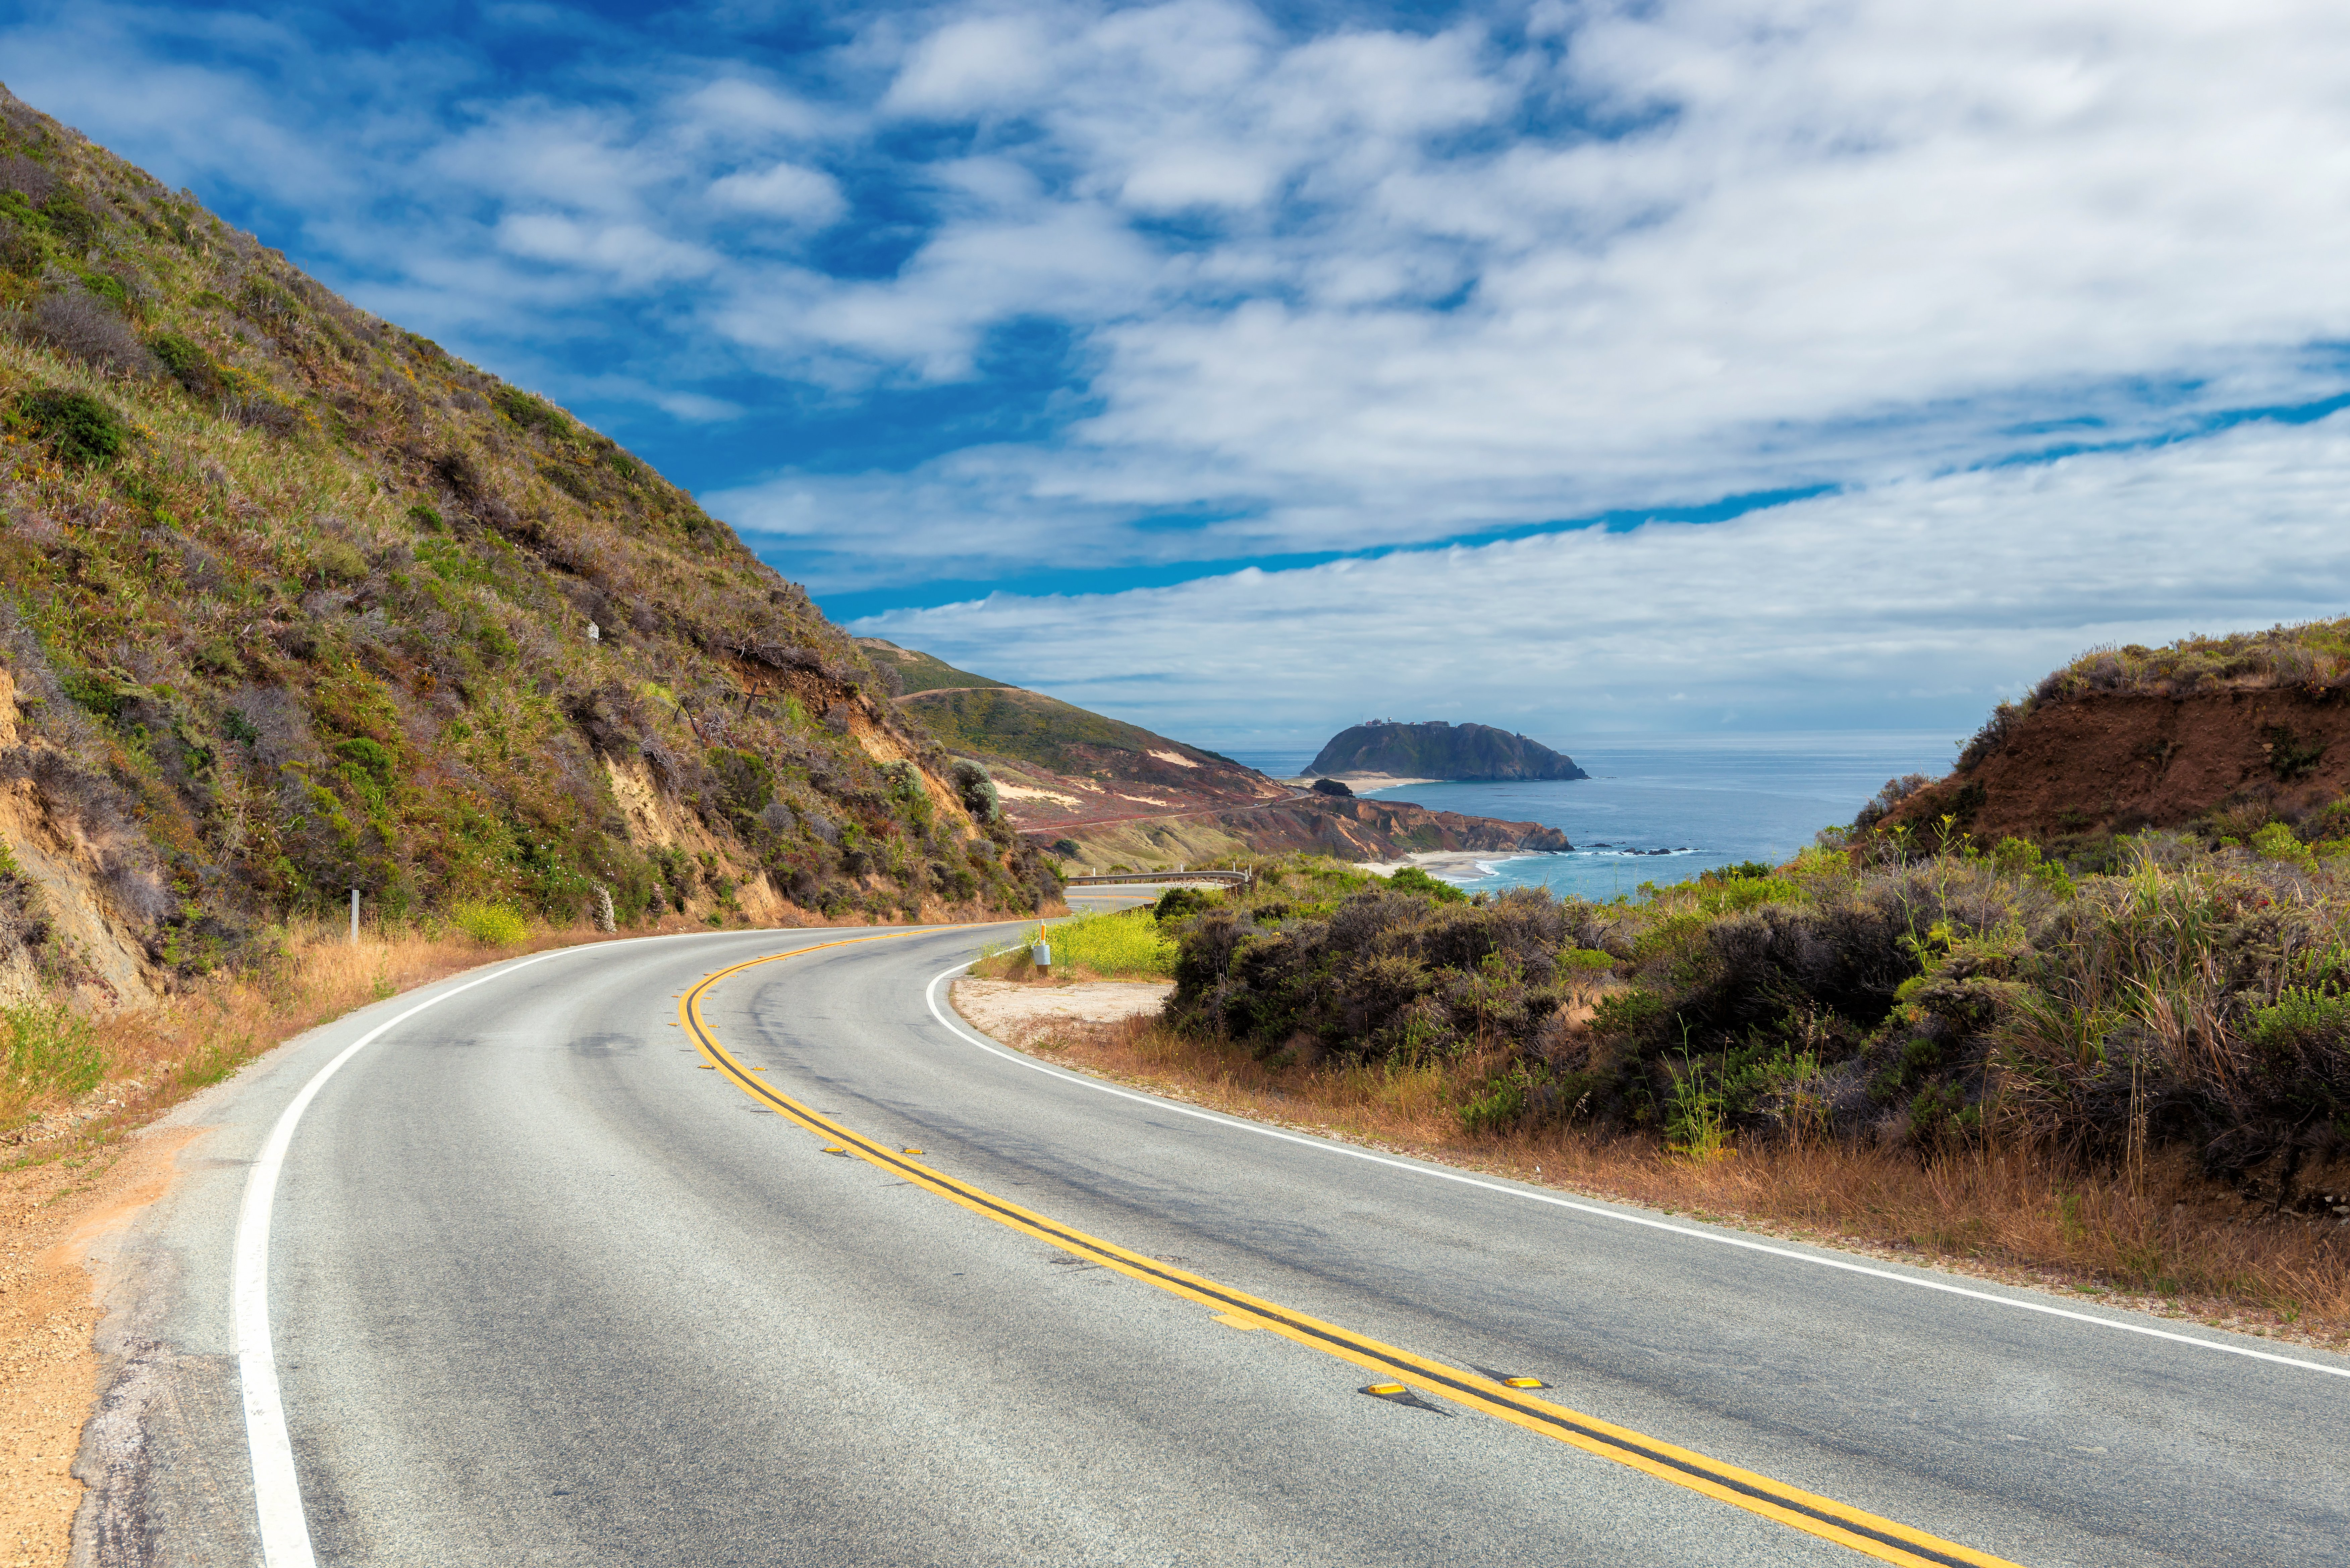 Road Trips with Pure: Southern California